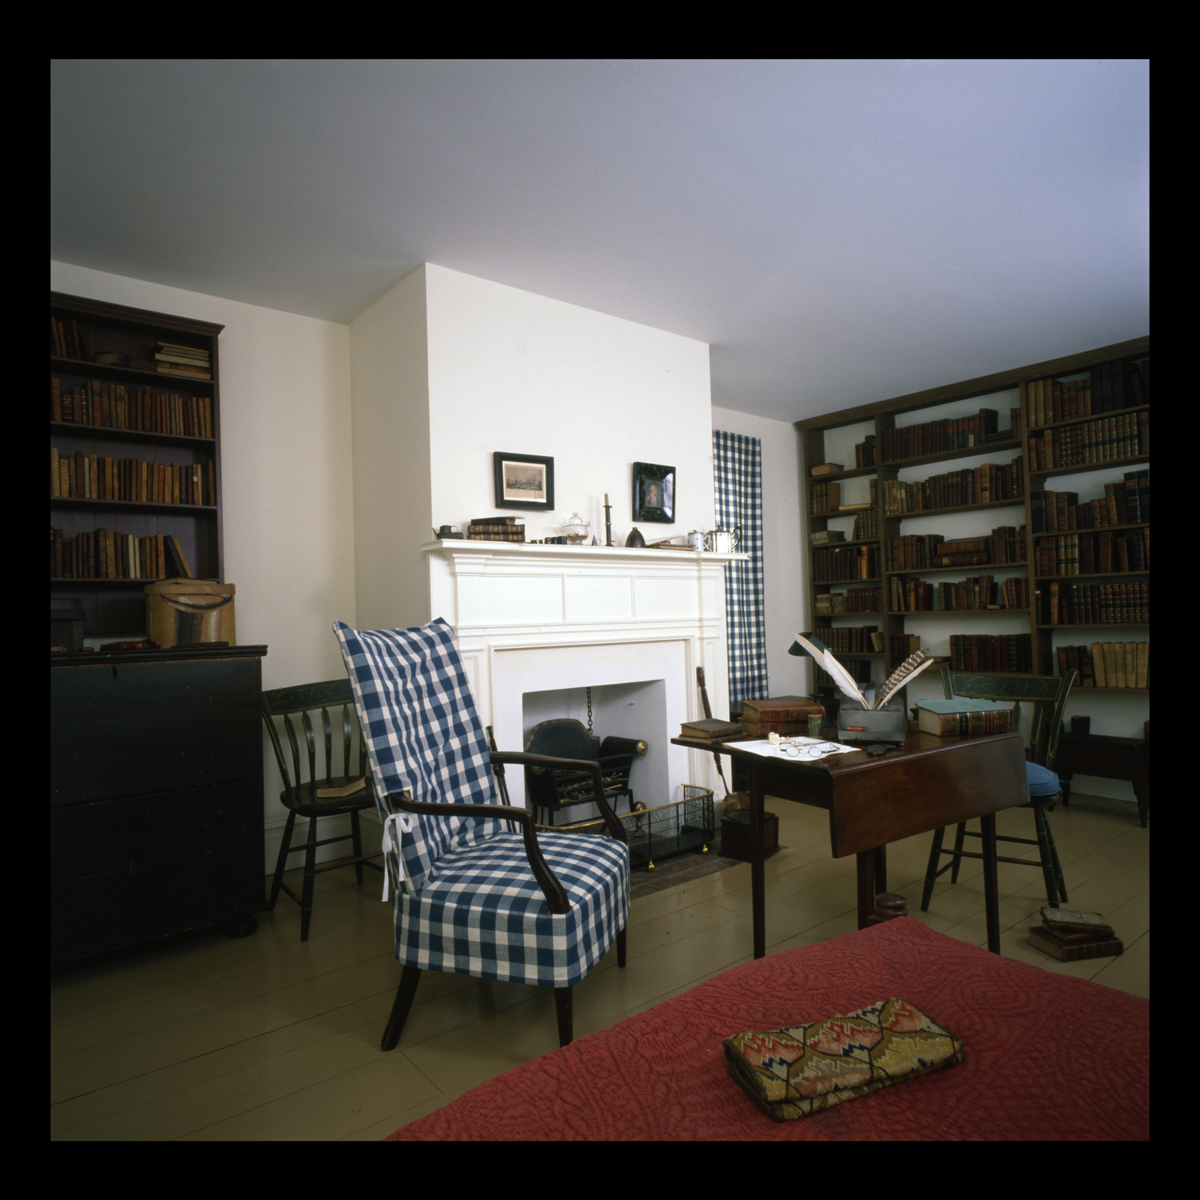 Room containing bookshelves, armchair, and table and side chairs